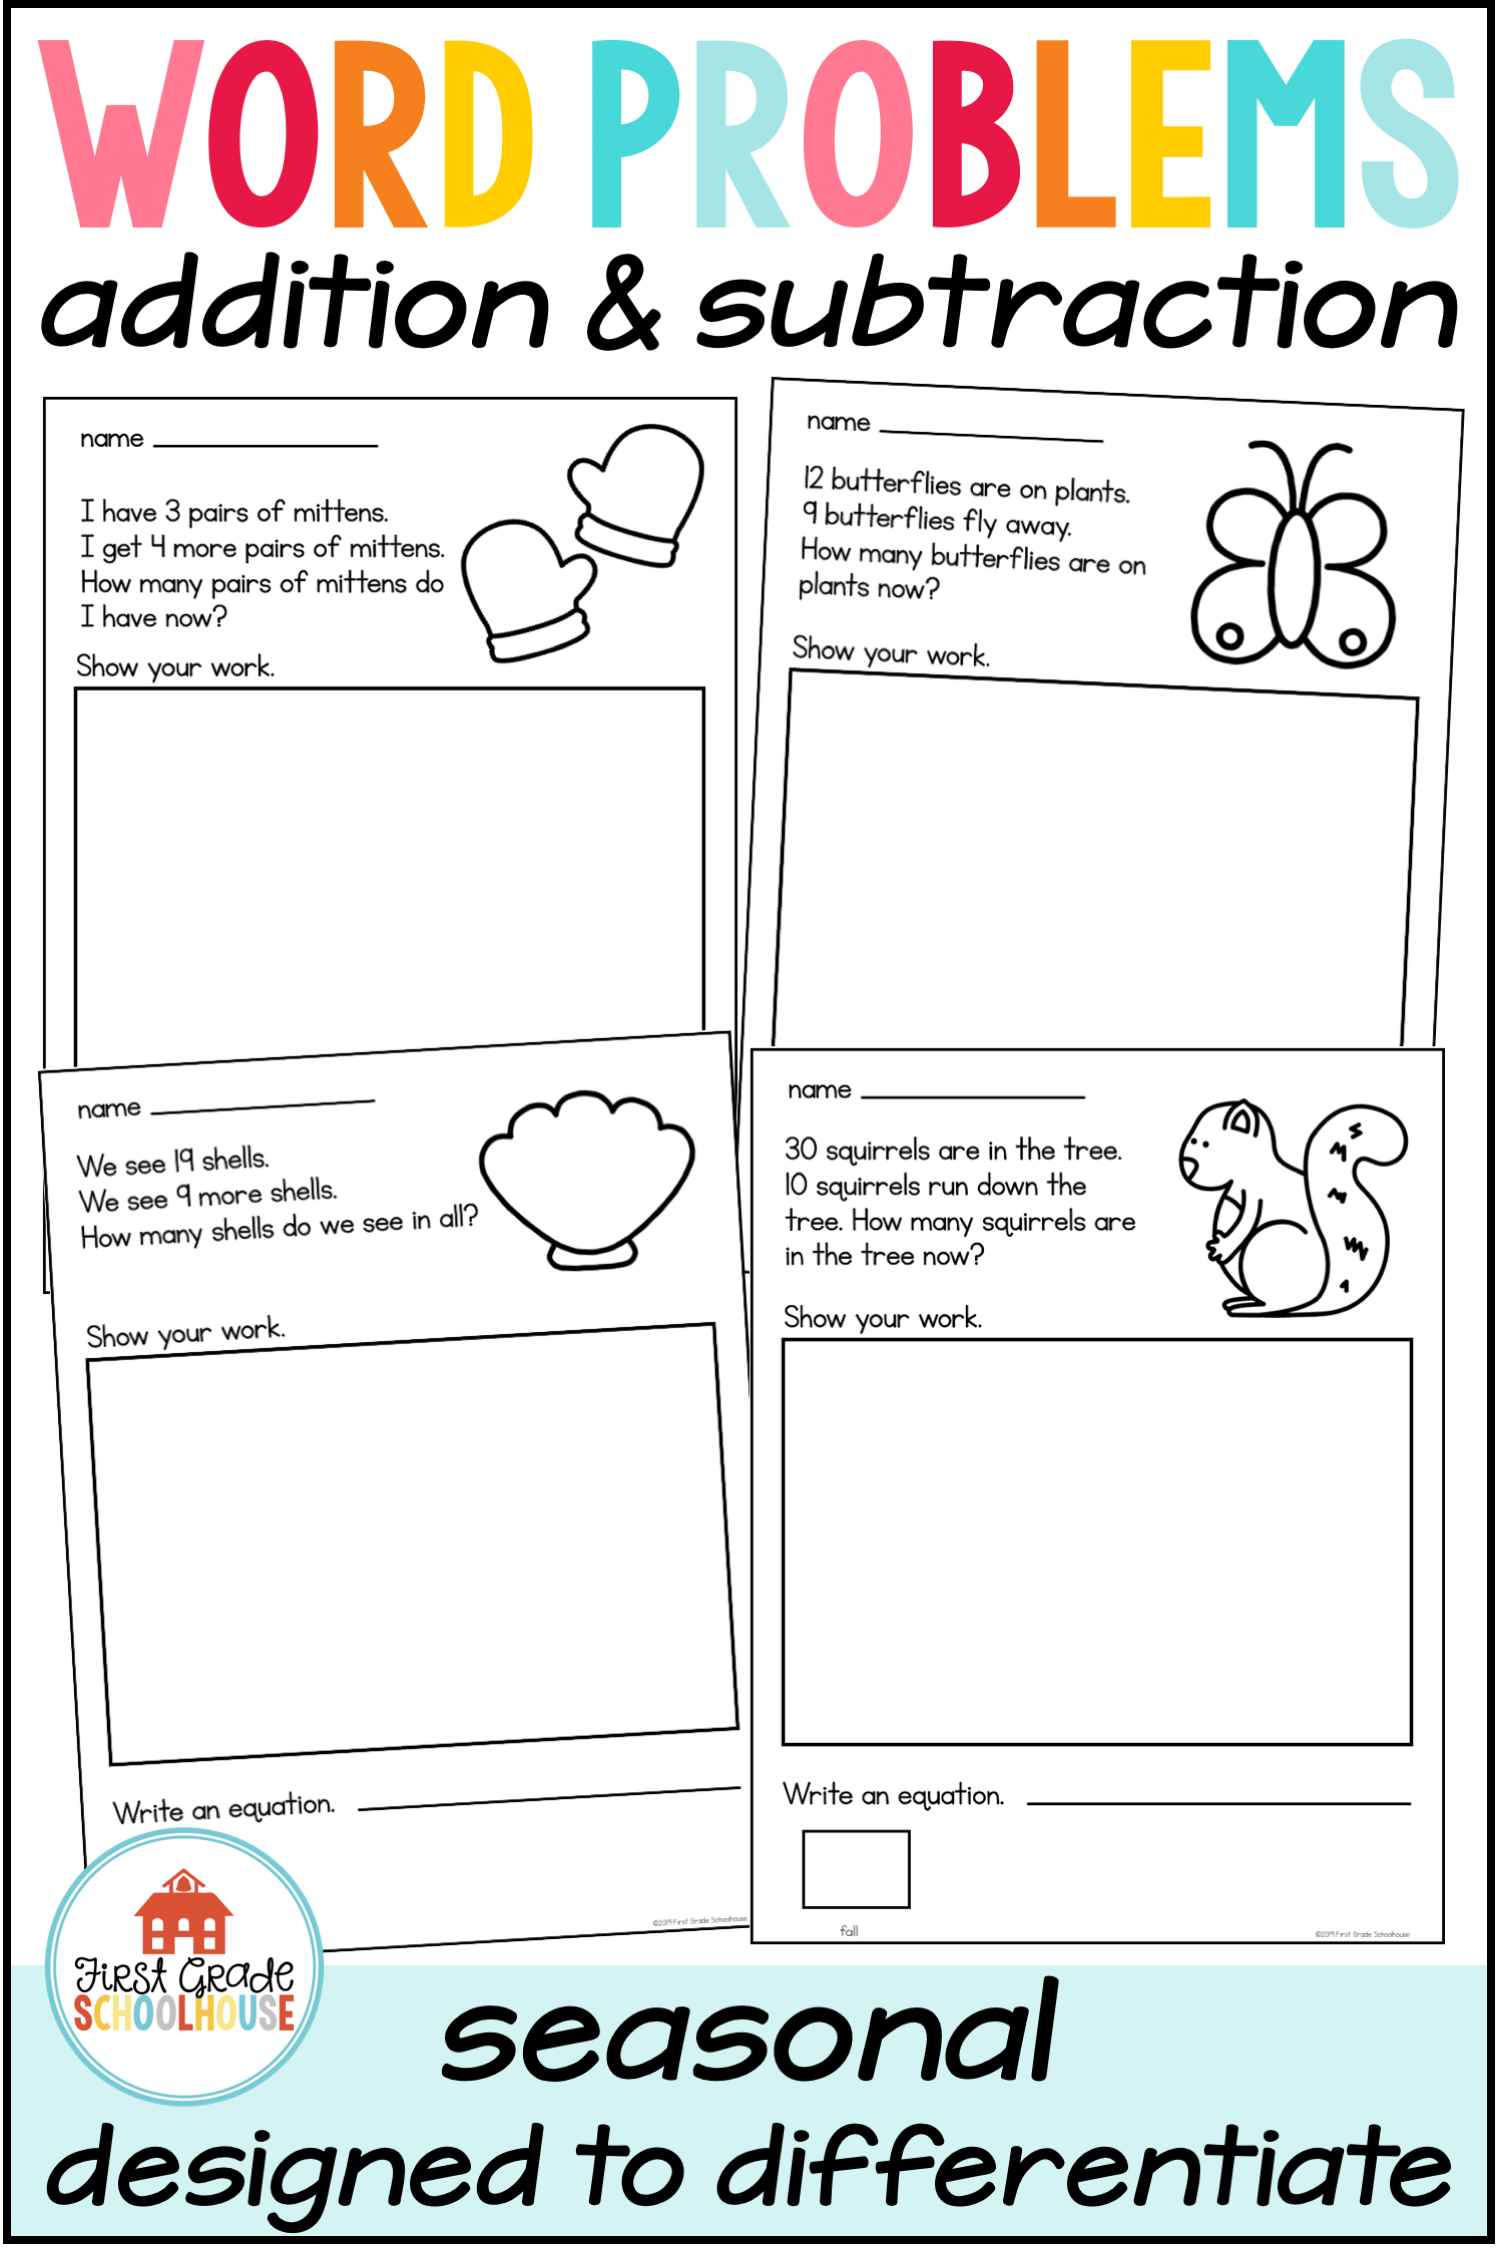 medium resolution of Word Problems Addition and Subtraction   Seasons   Preschool math worksheets